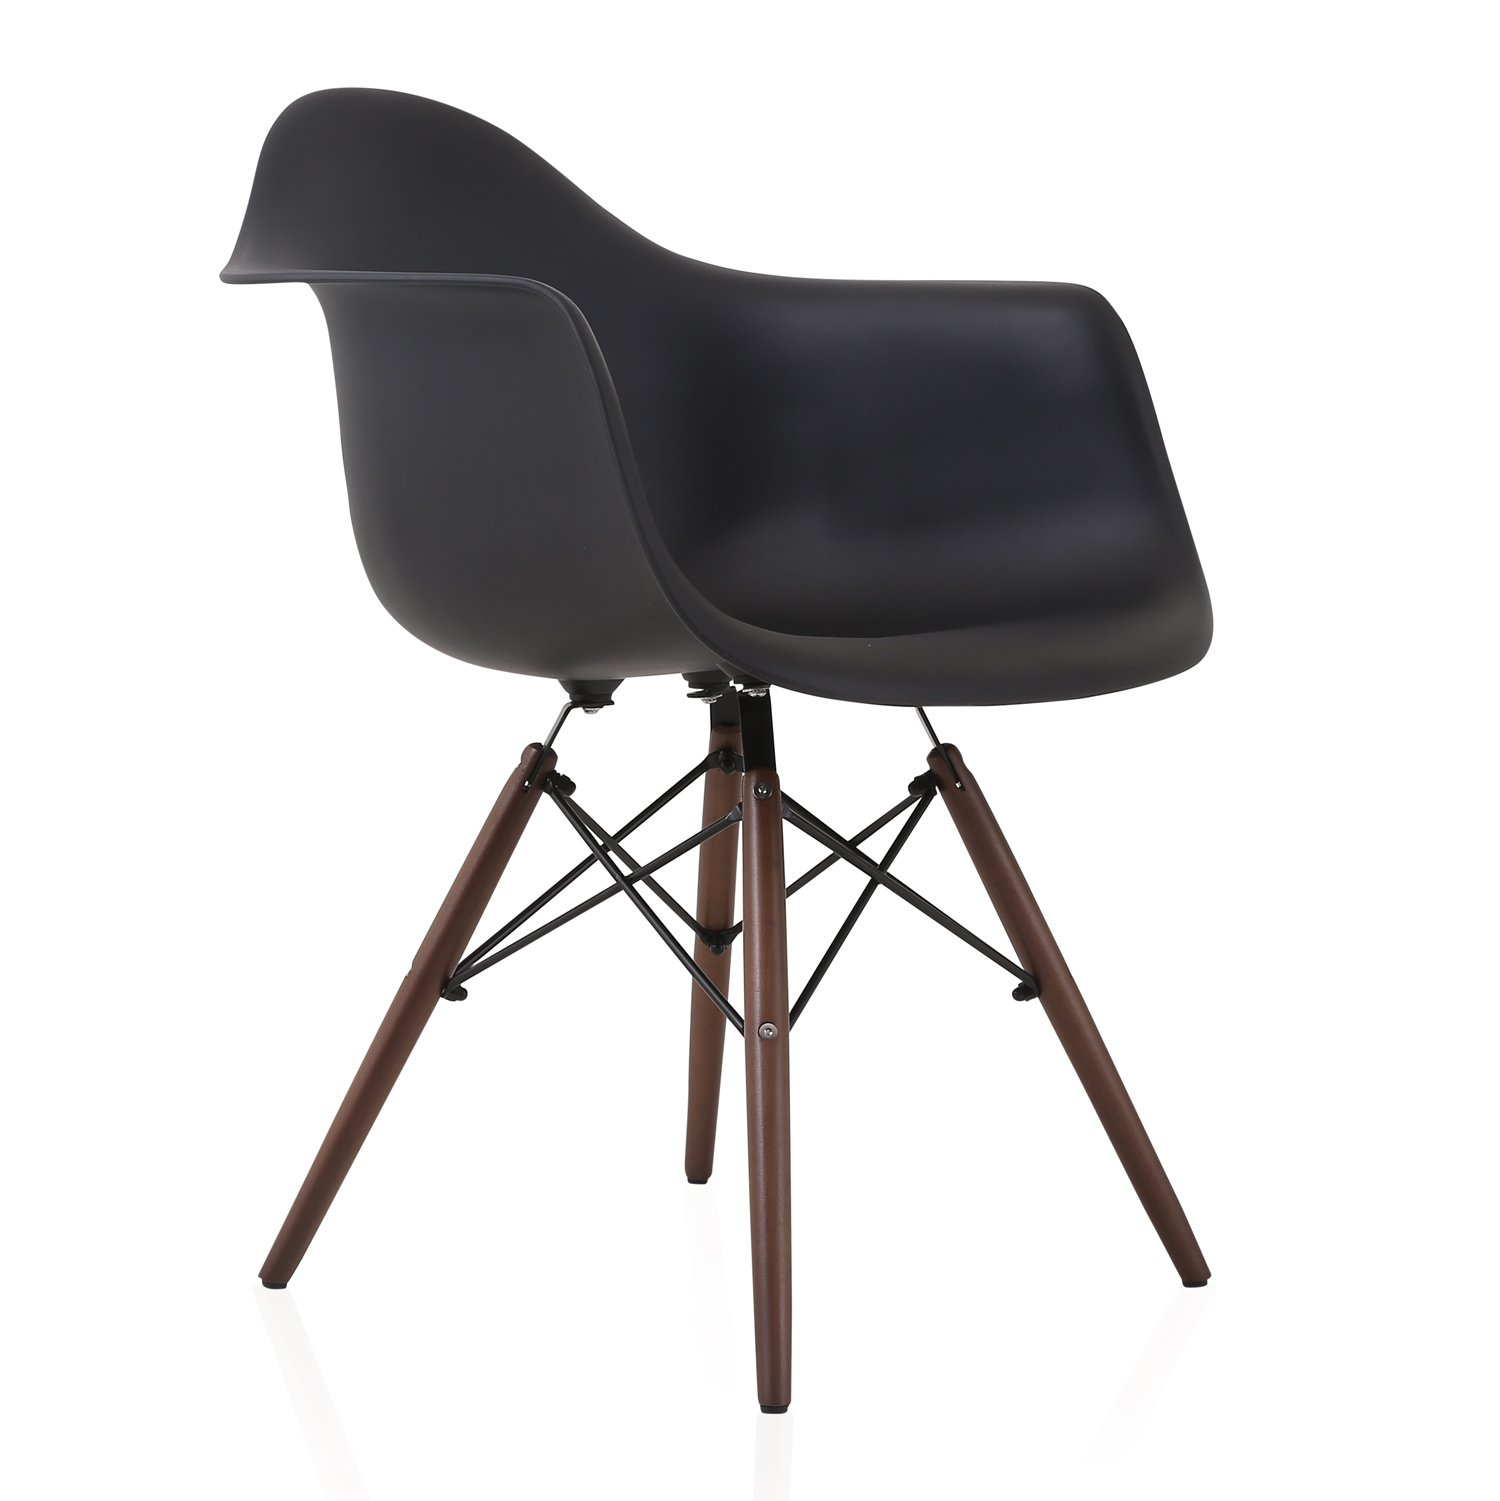 DAW Scandinavian Black Molded Plastic Dining Arm Chair with Dark Walnut Wood Eiffel Legs